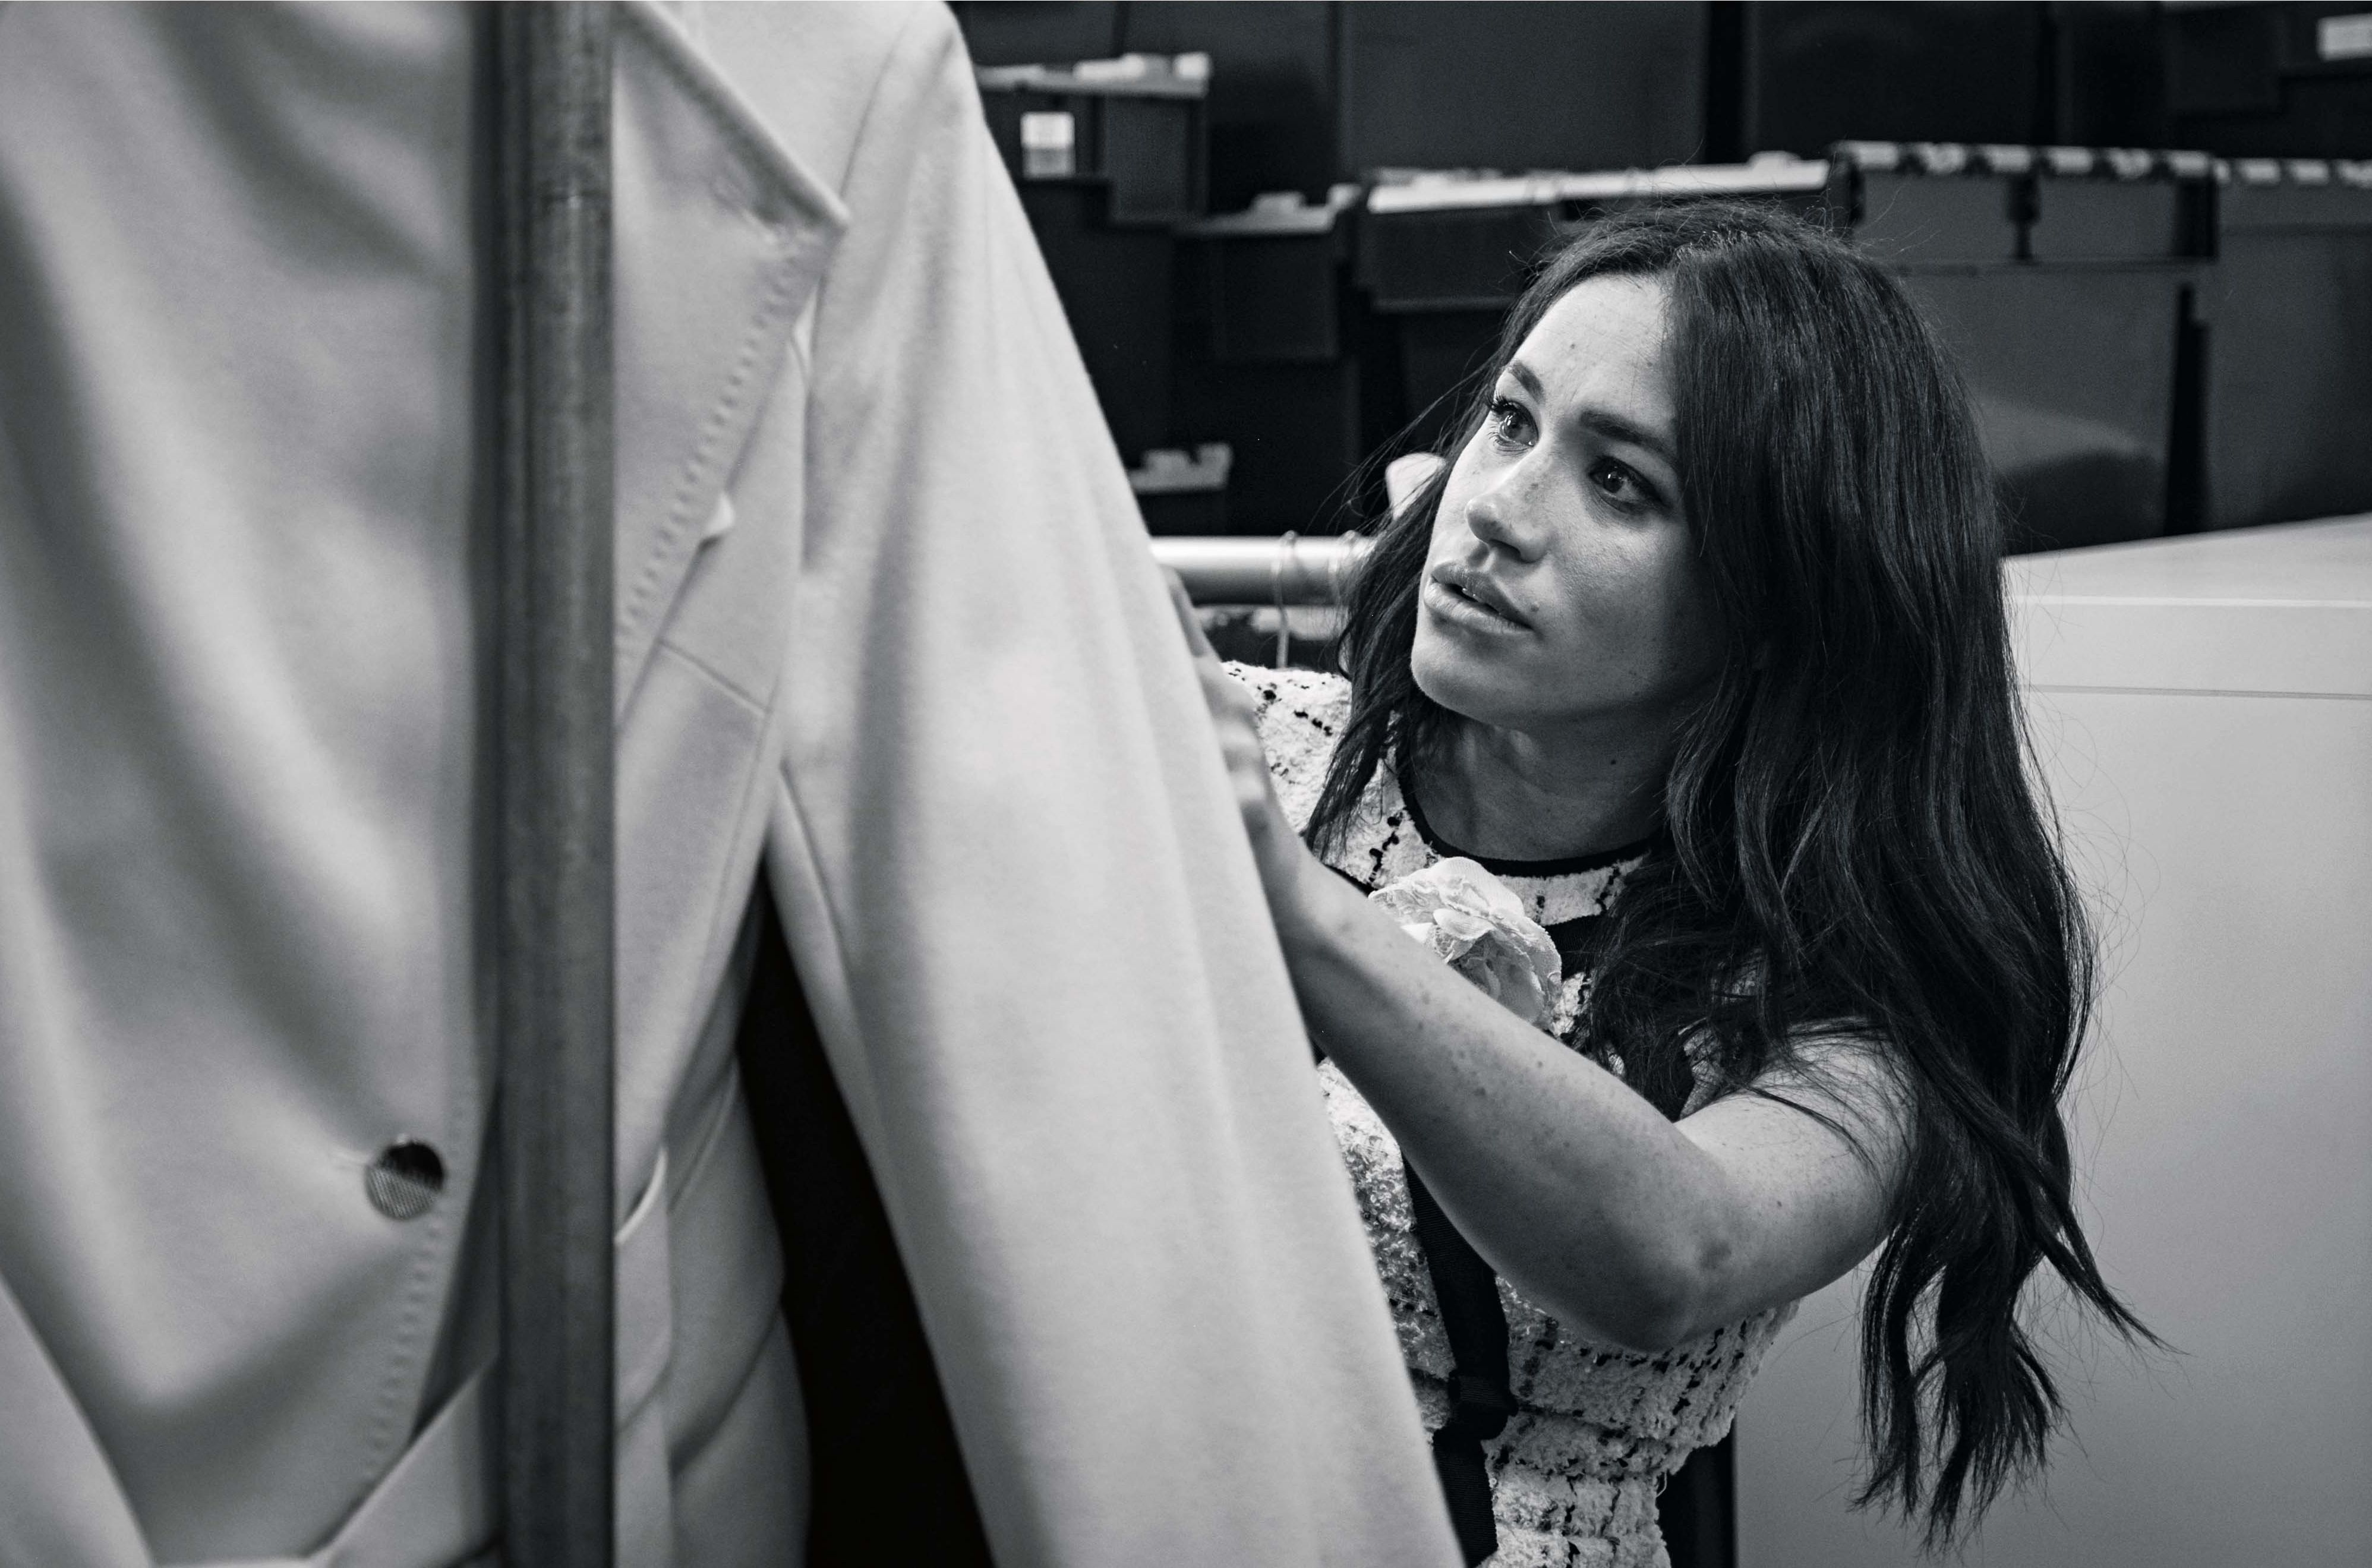 Meghan Markle looking through clothing